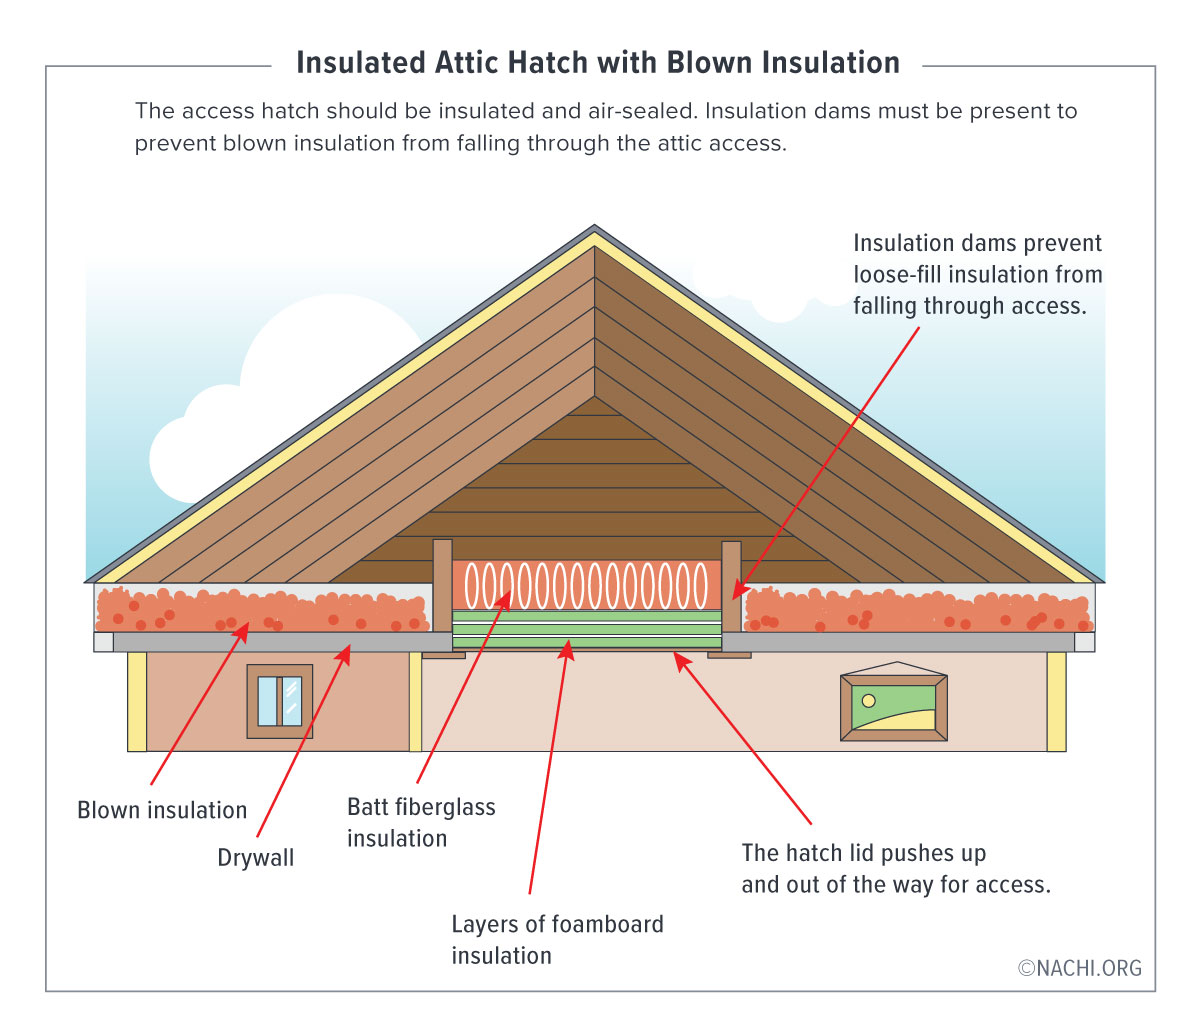 The access hatch should be insulated and air-sealed. Insulation dams must be present to prevent blown insulation from falling through the attic access.